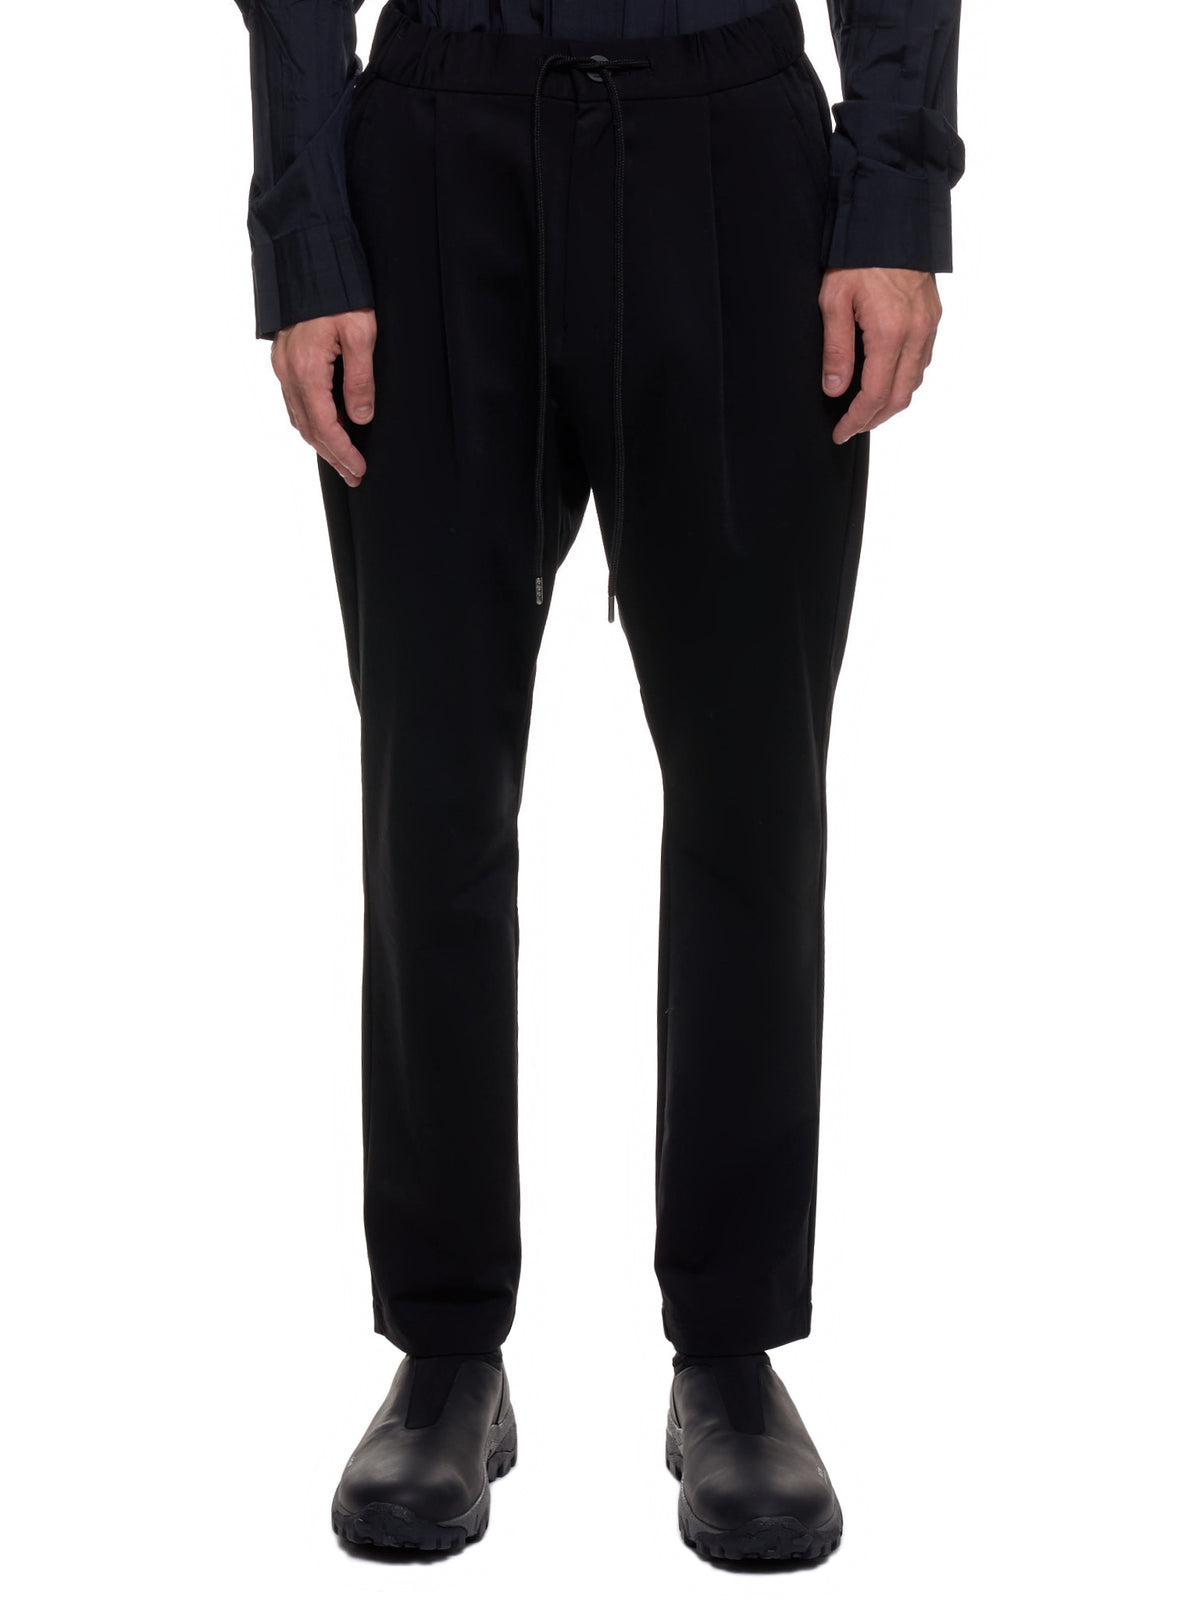 Relaxed Chino Trousers (AP03-229-BLACK)